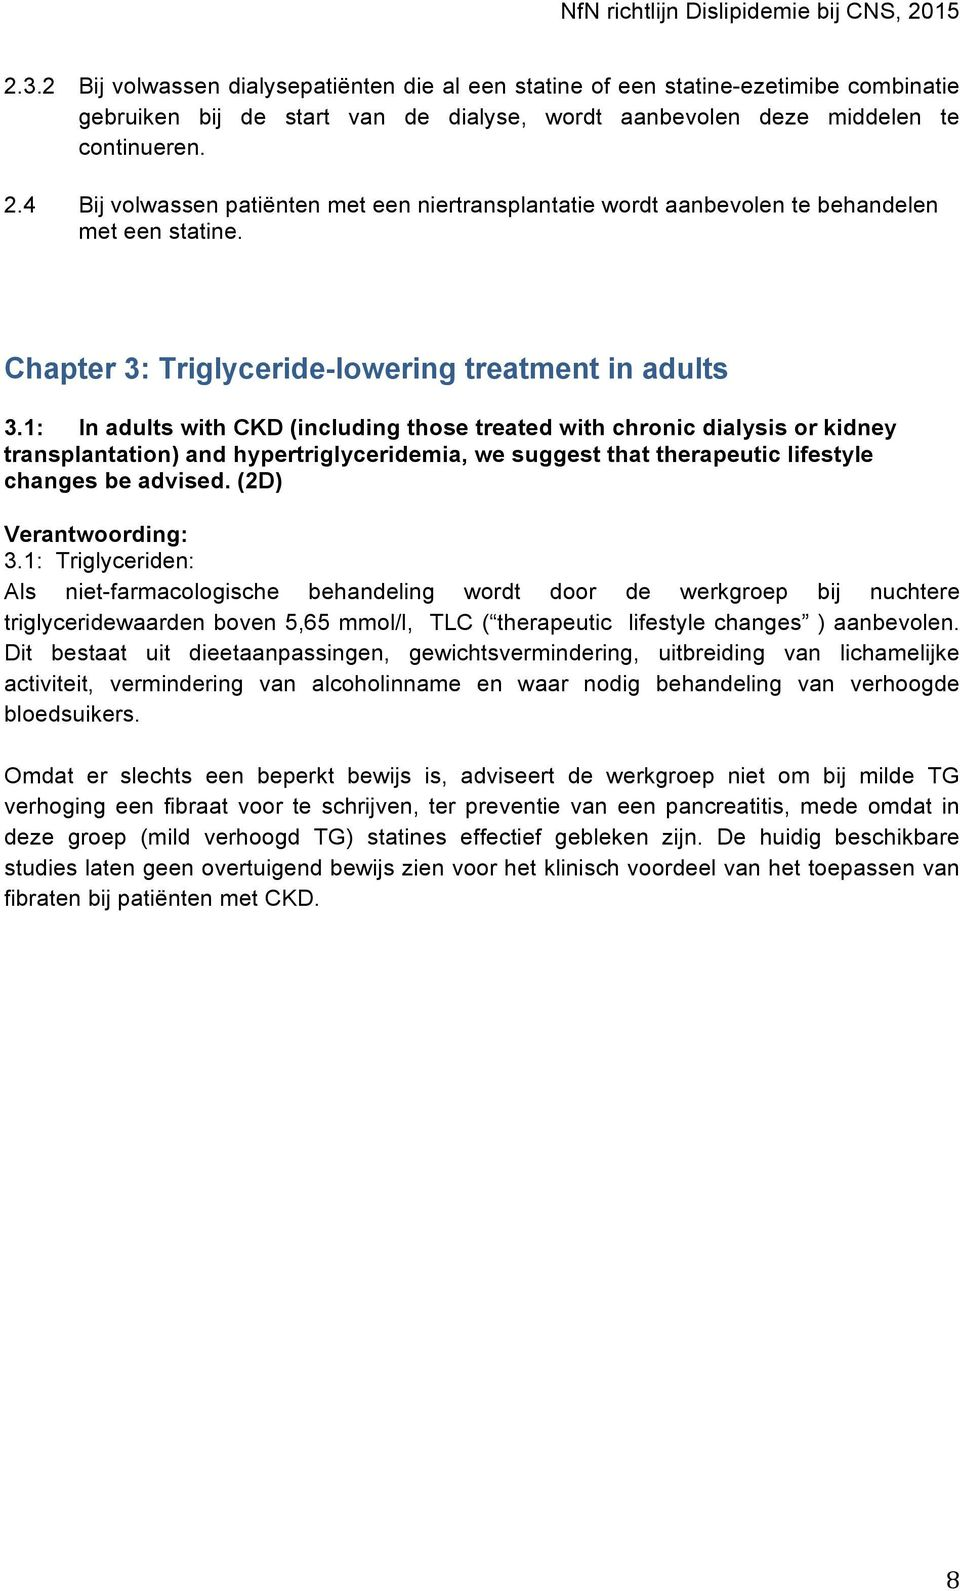 1: In adults with CKD (including those treated with chronic dialysis or kidney transplantation) and hypertriglyceridemia, we suggest that therapeutic lifestyle changes be advised.